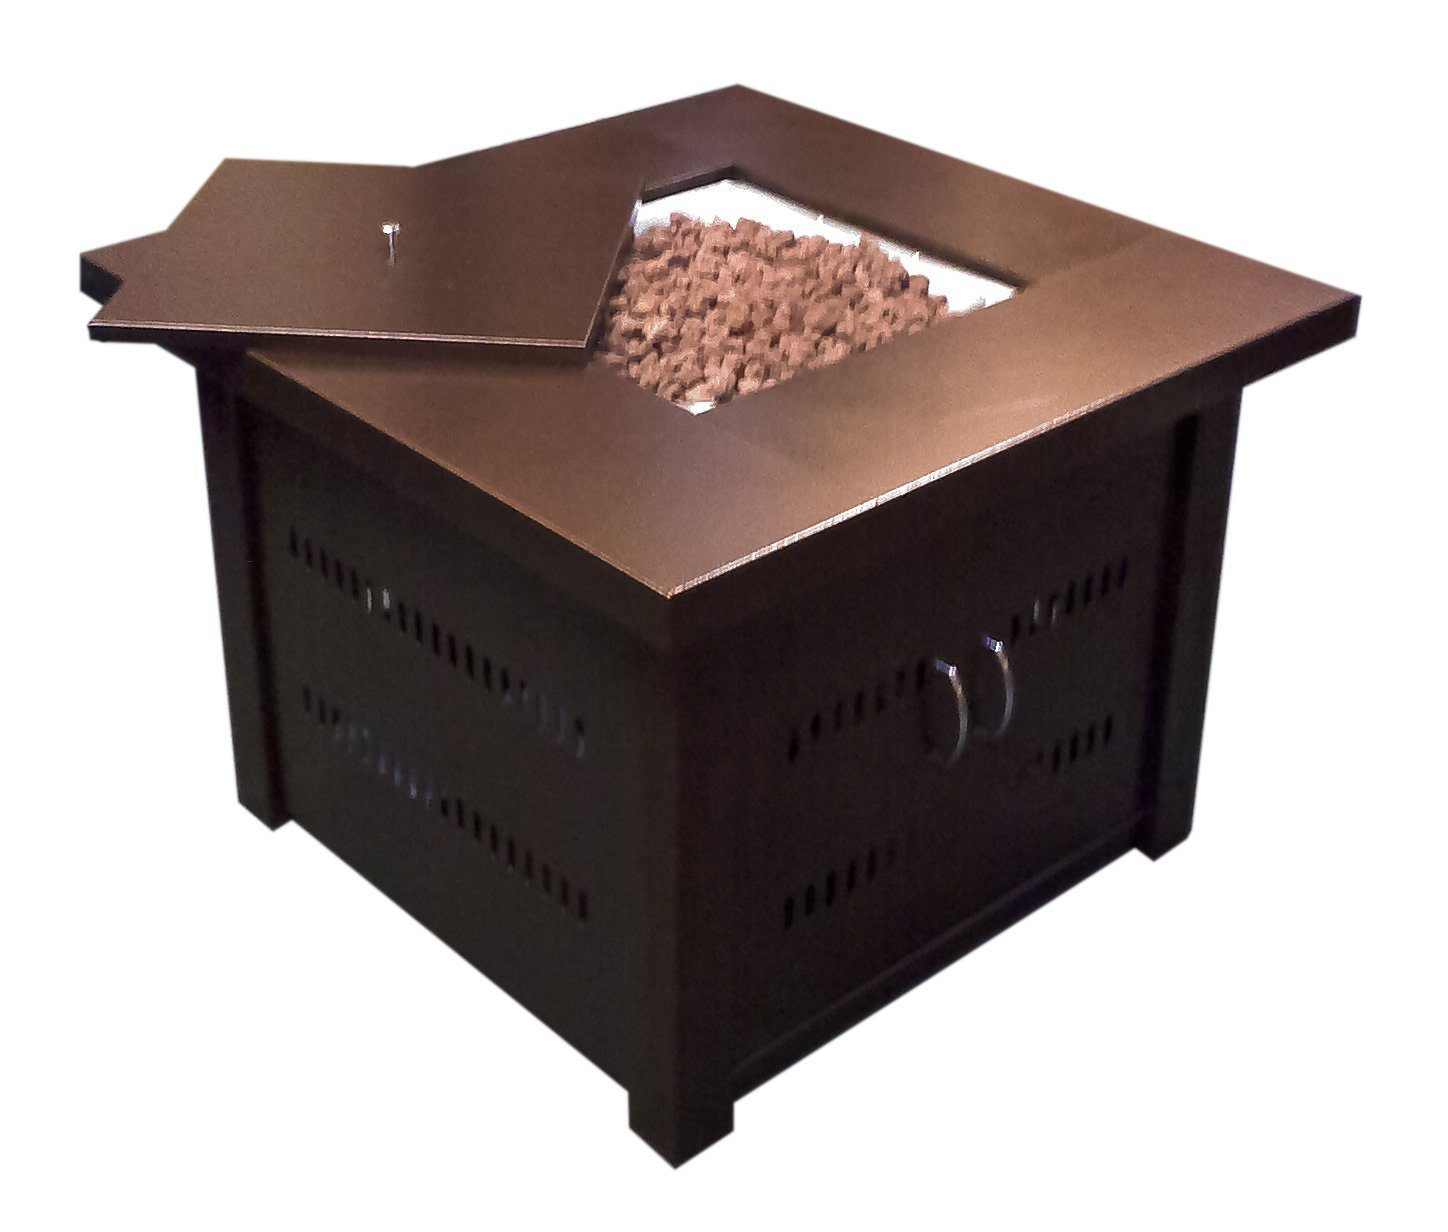 Az patio heaters gs f pc propane fire pit review for Az patio heaters gs f pc propane fire pit